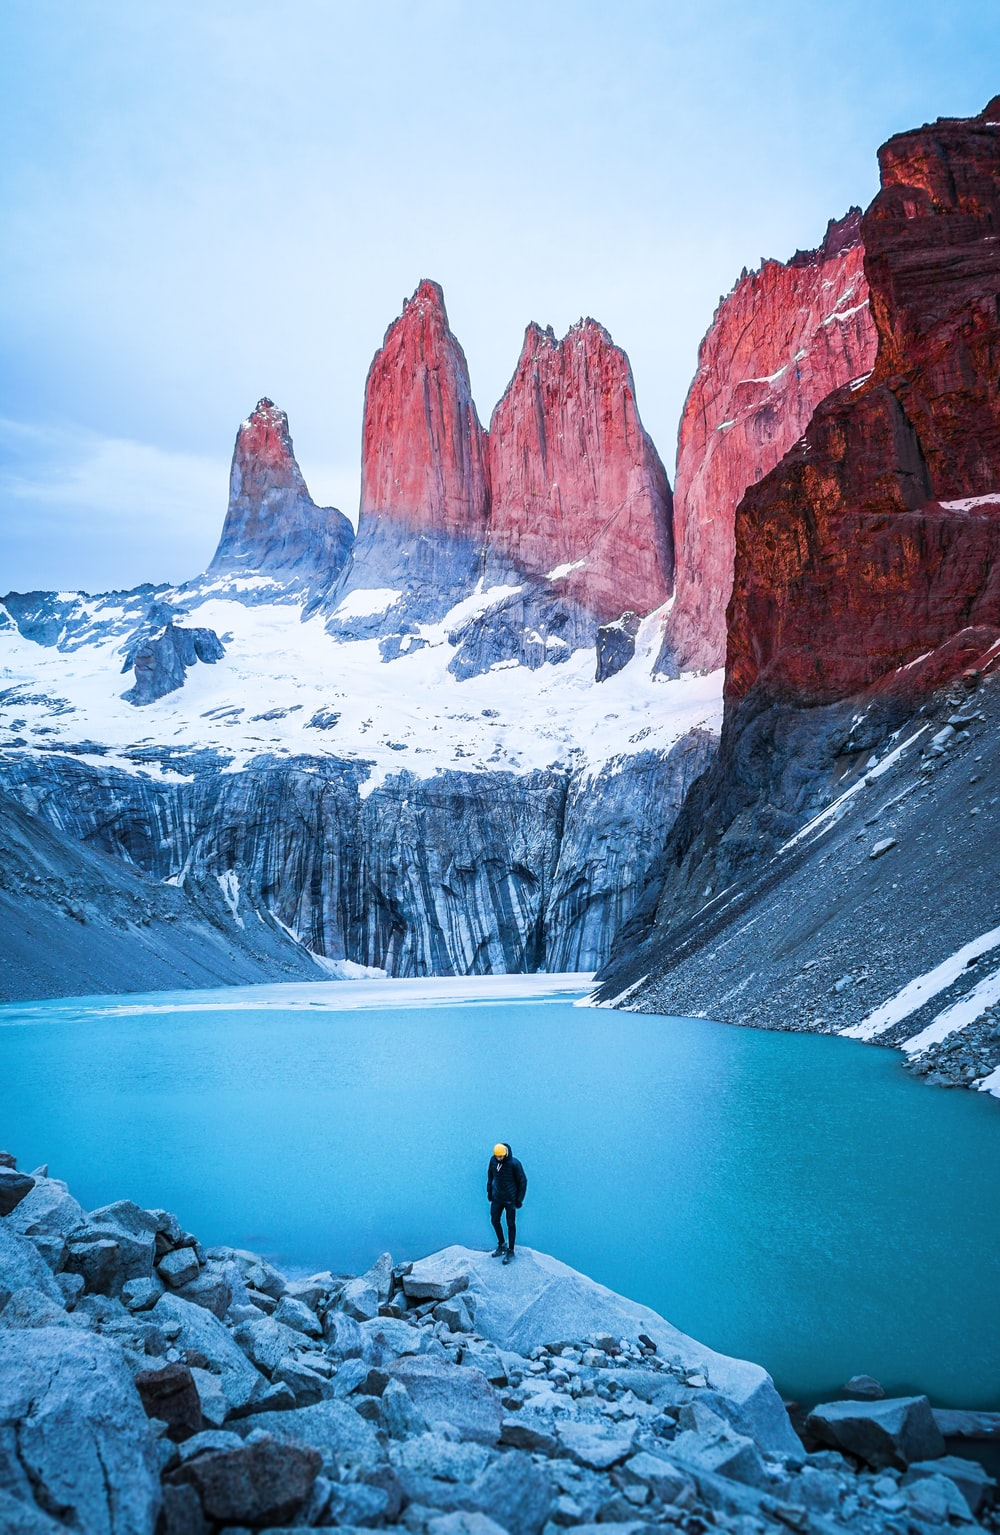 man standing on rock facing body of water and mountain